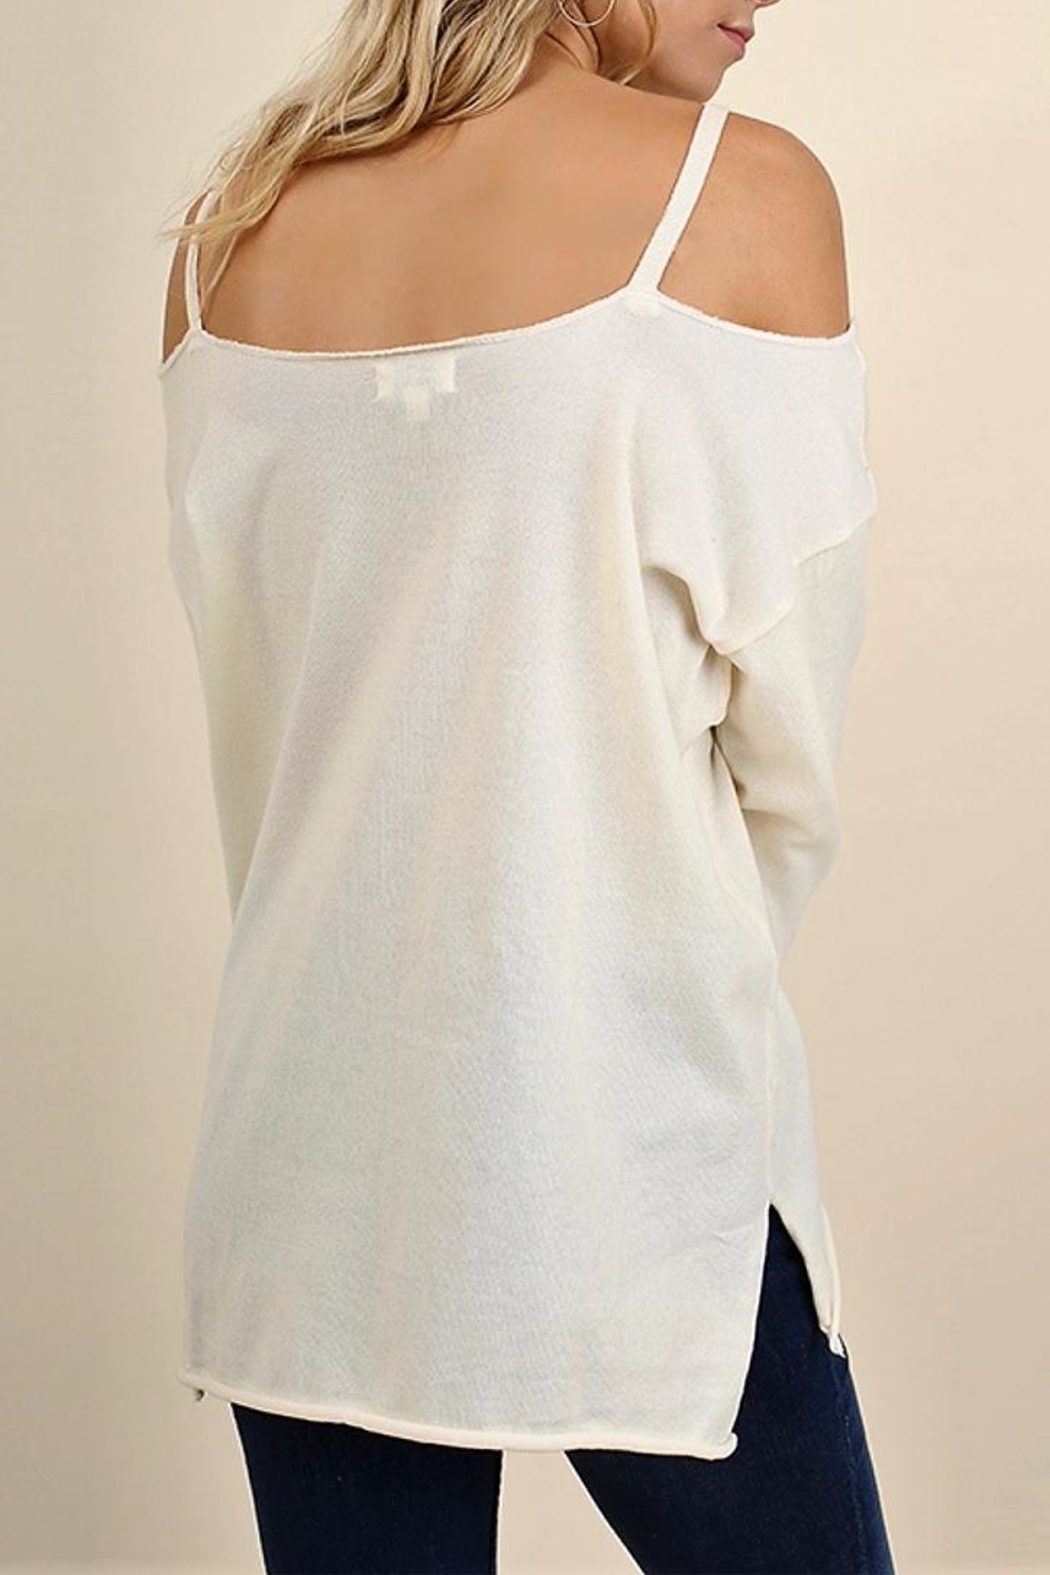 People Outfitter Eternity Cold Shoulder Top - Front Full Image